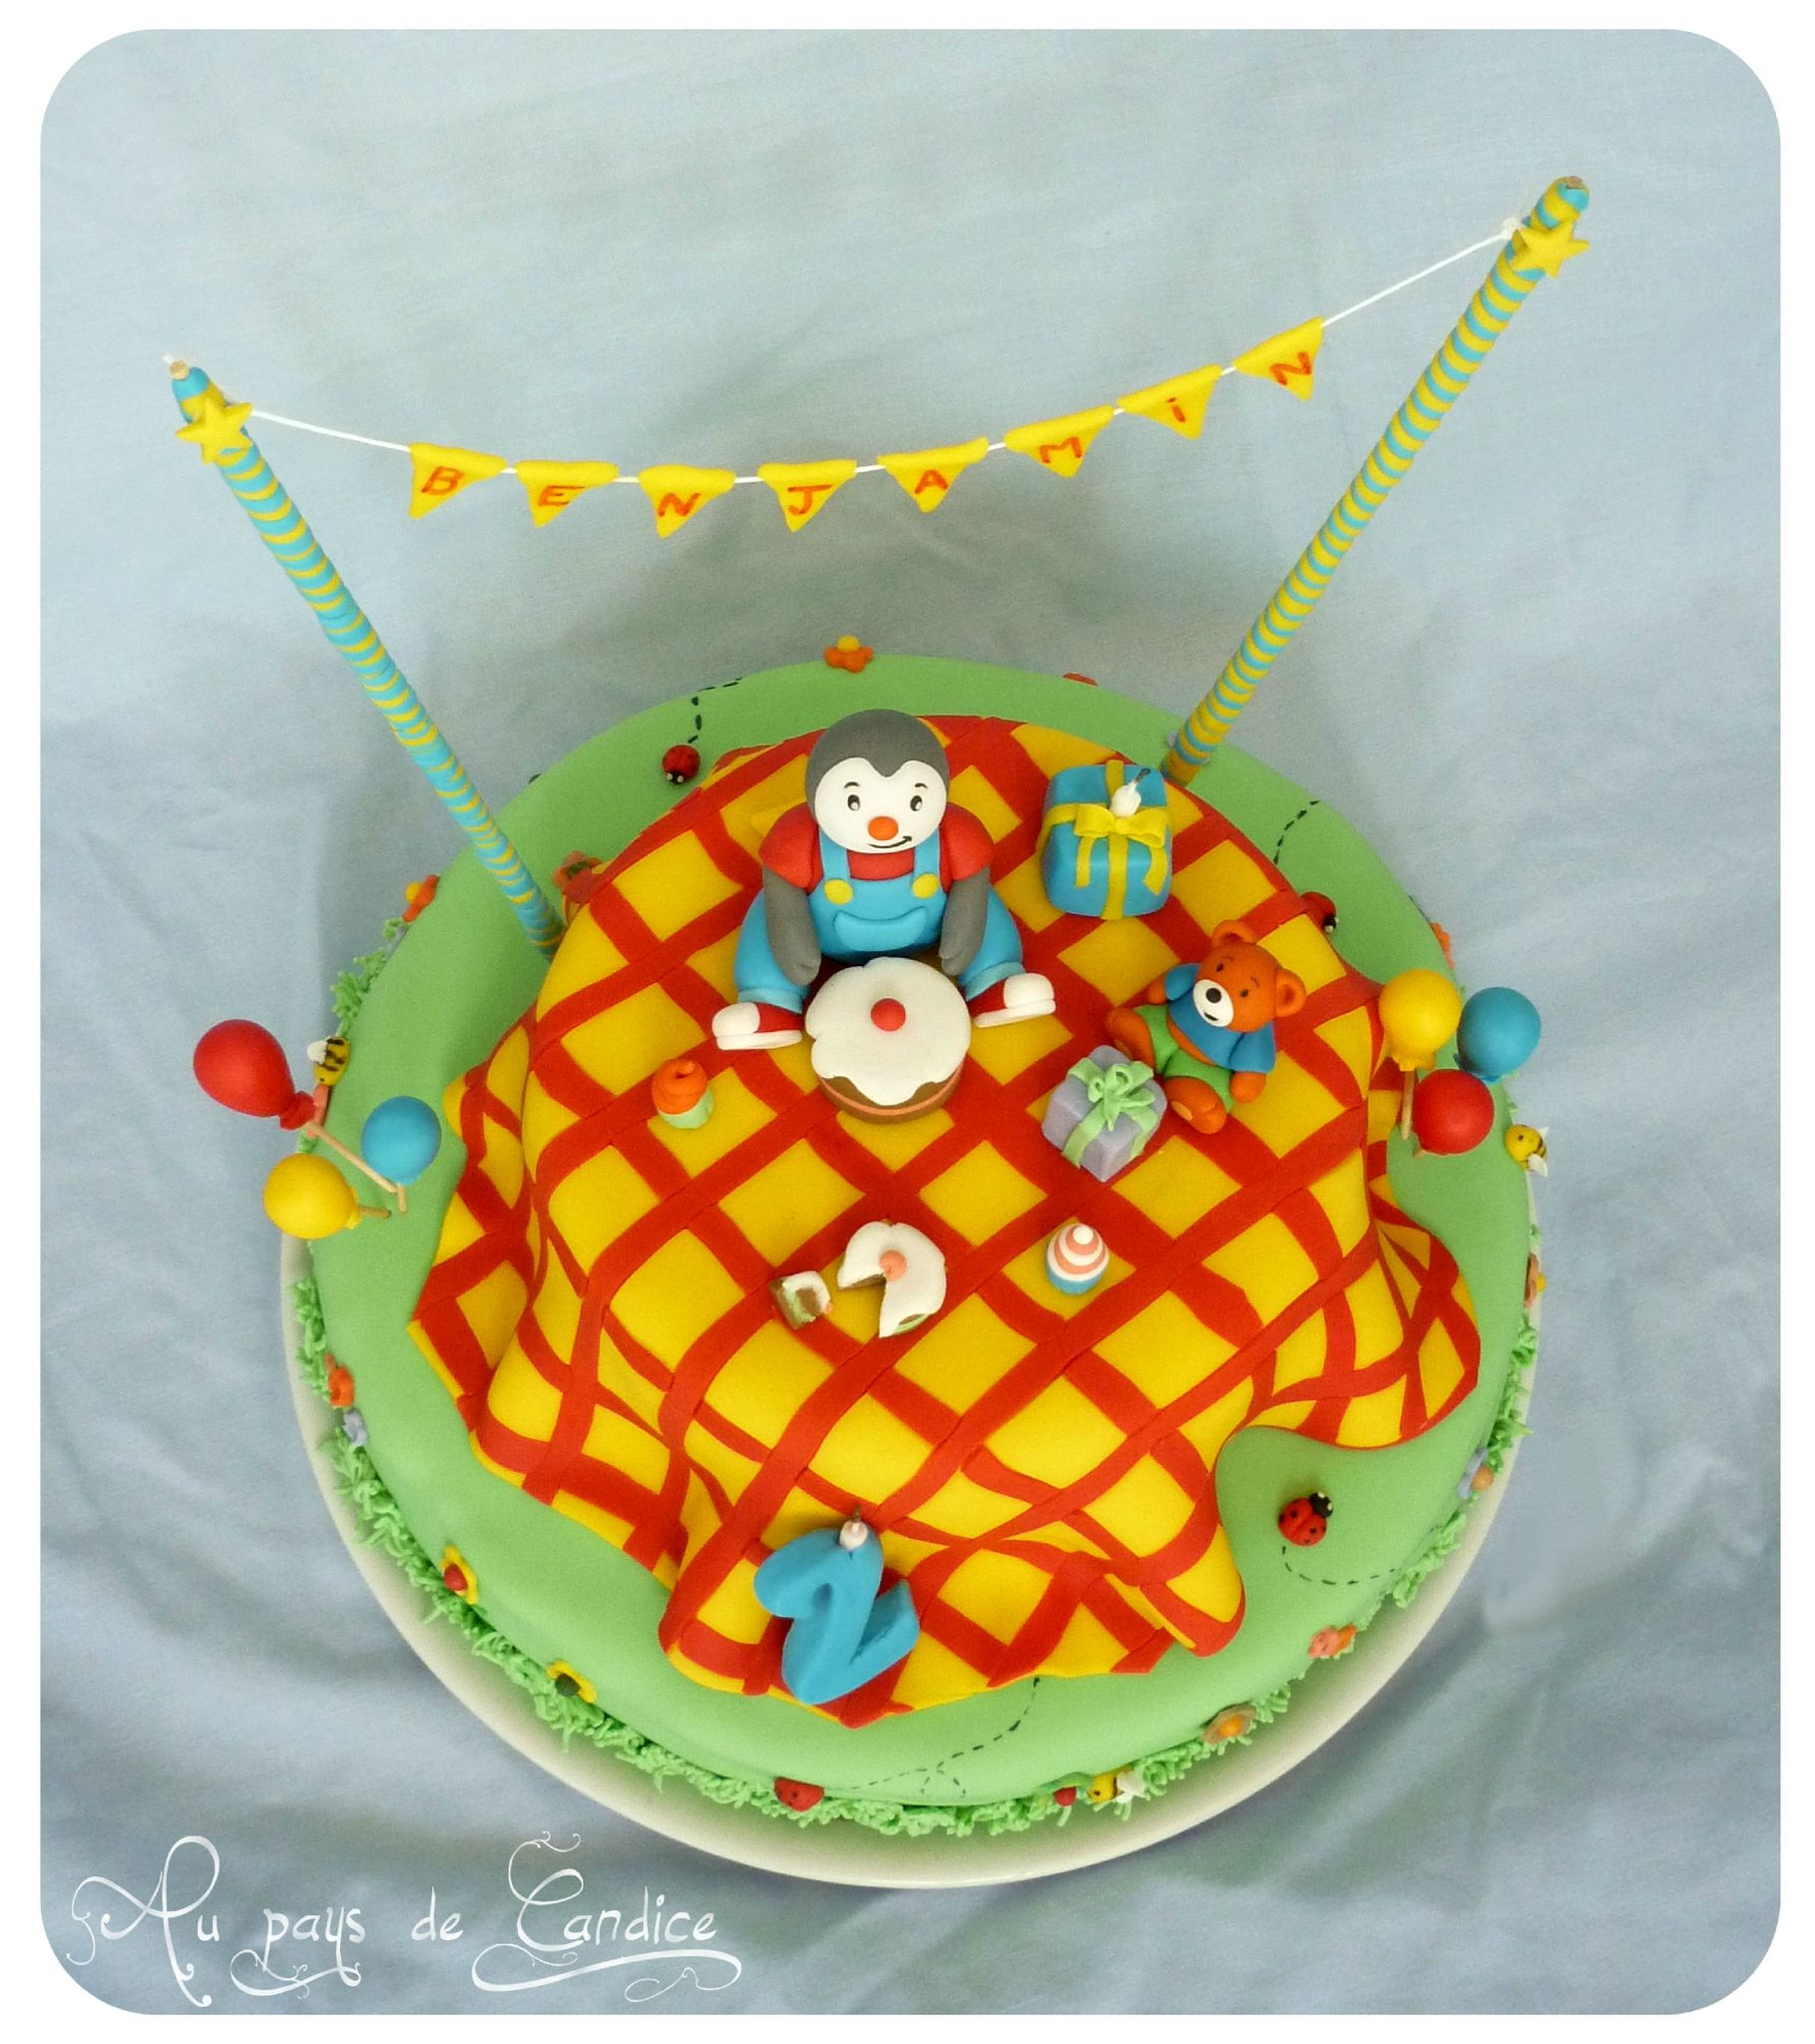 1000 images about gateau tchoupi on pinterest - Anniversaire tchoupi ...